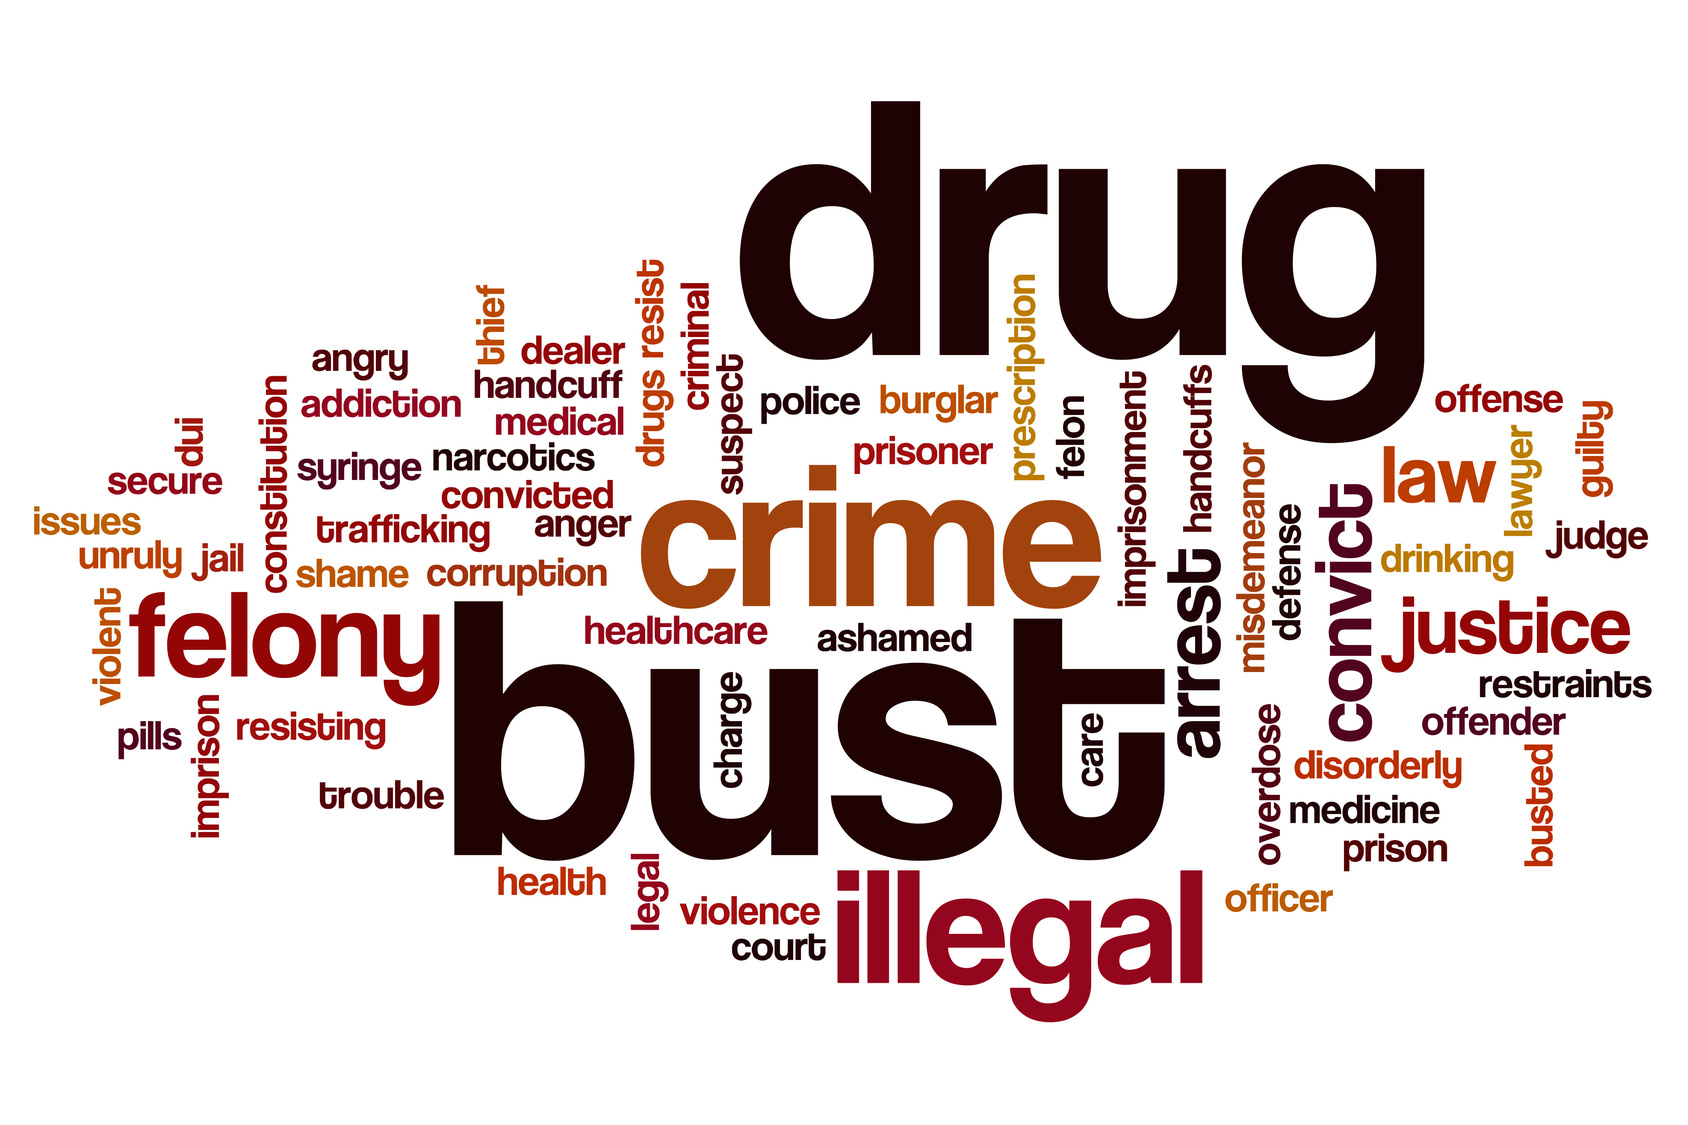 Drug bust word cloud concept and if you need an acclaimed criminal defense attorney find one in Flint.